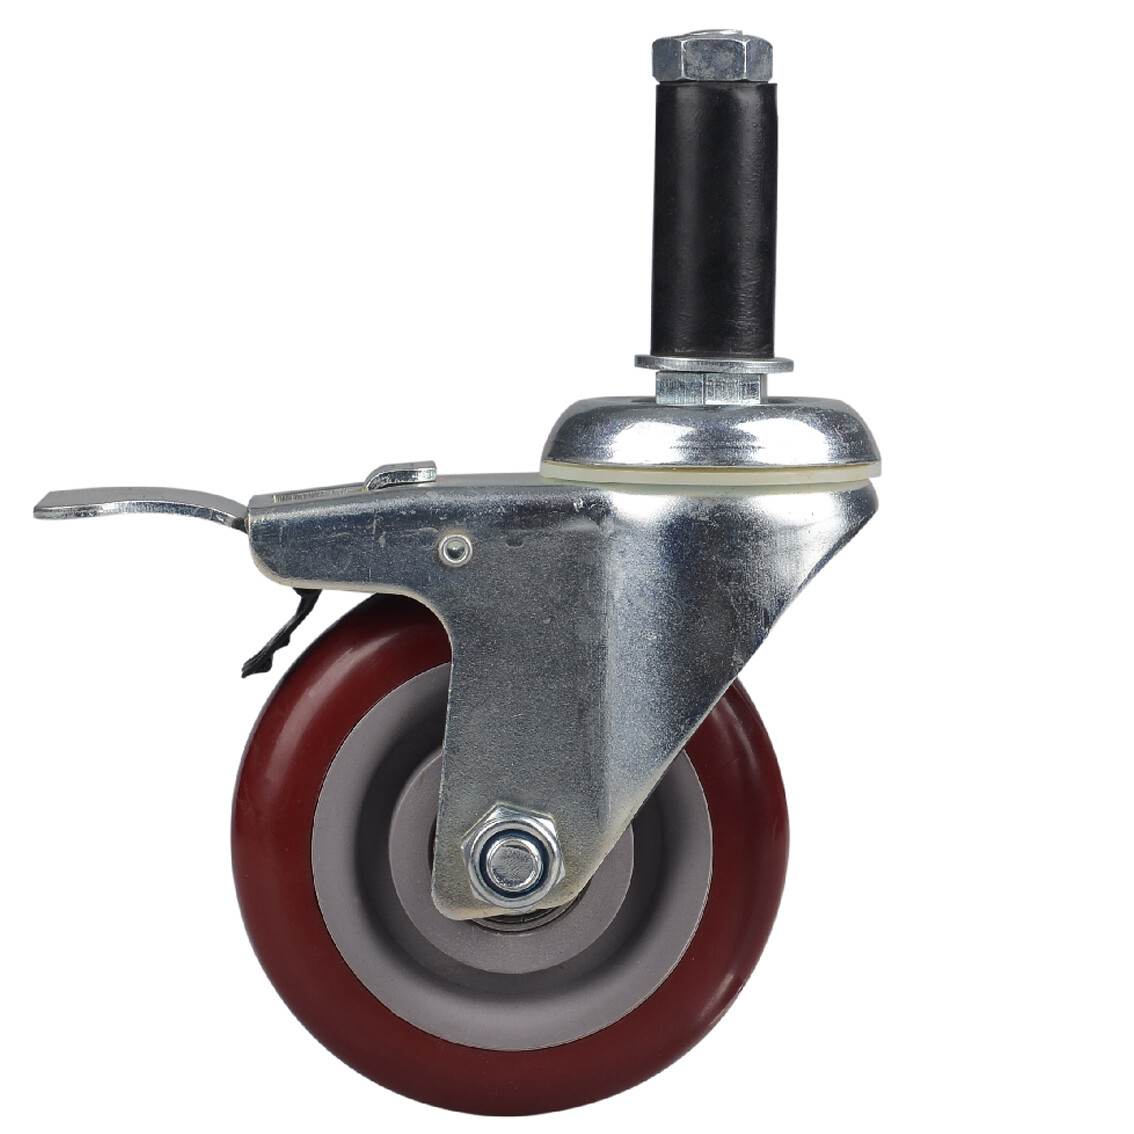 Stem swivel PVC caster with brake, red